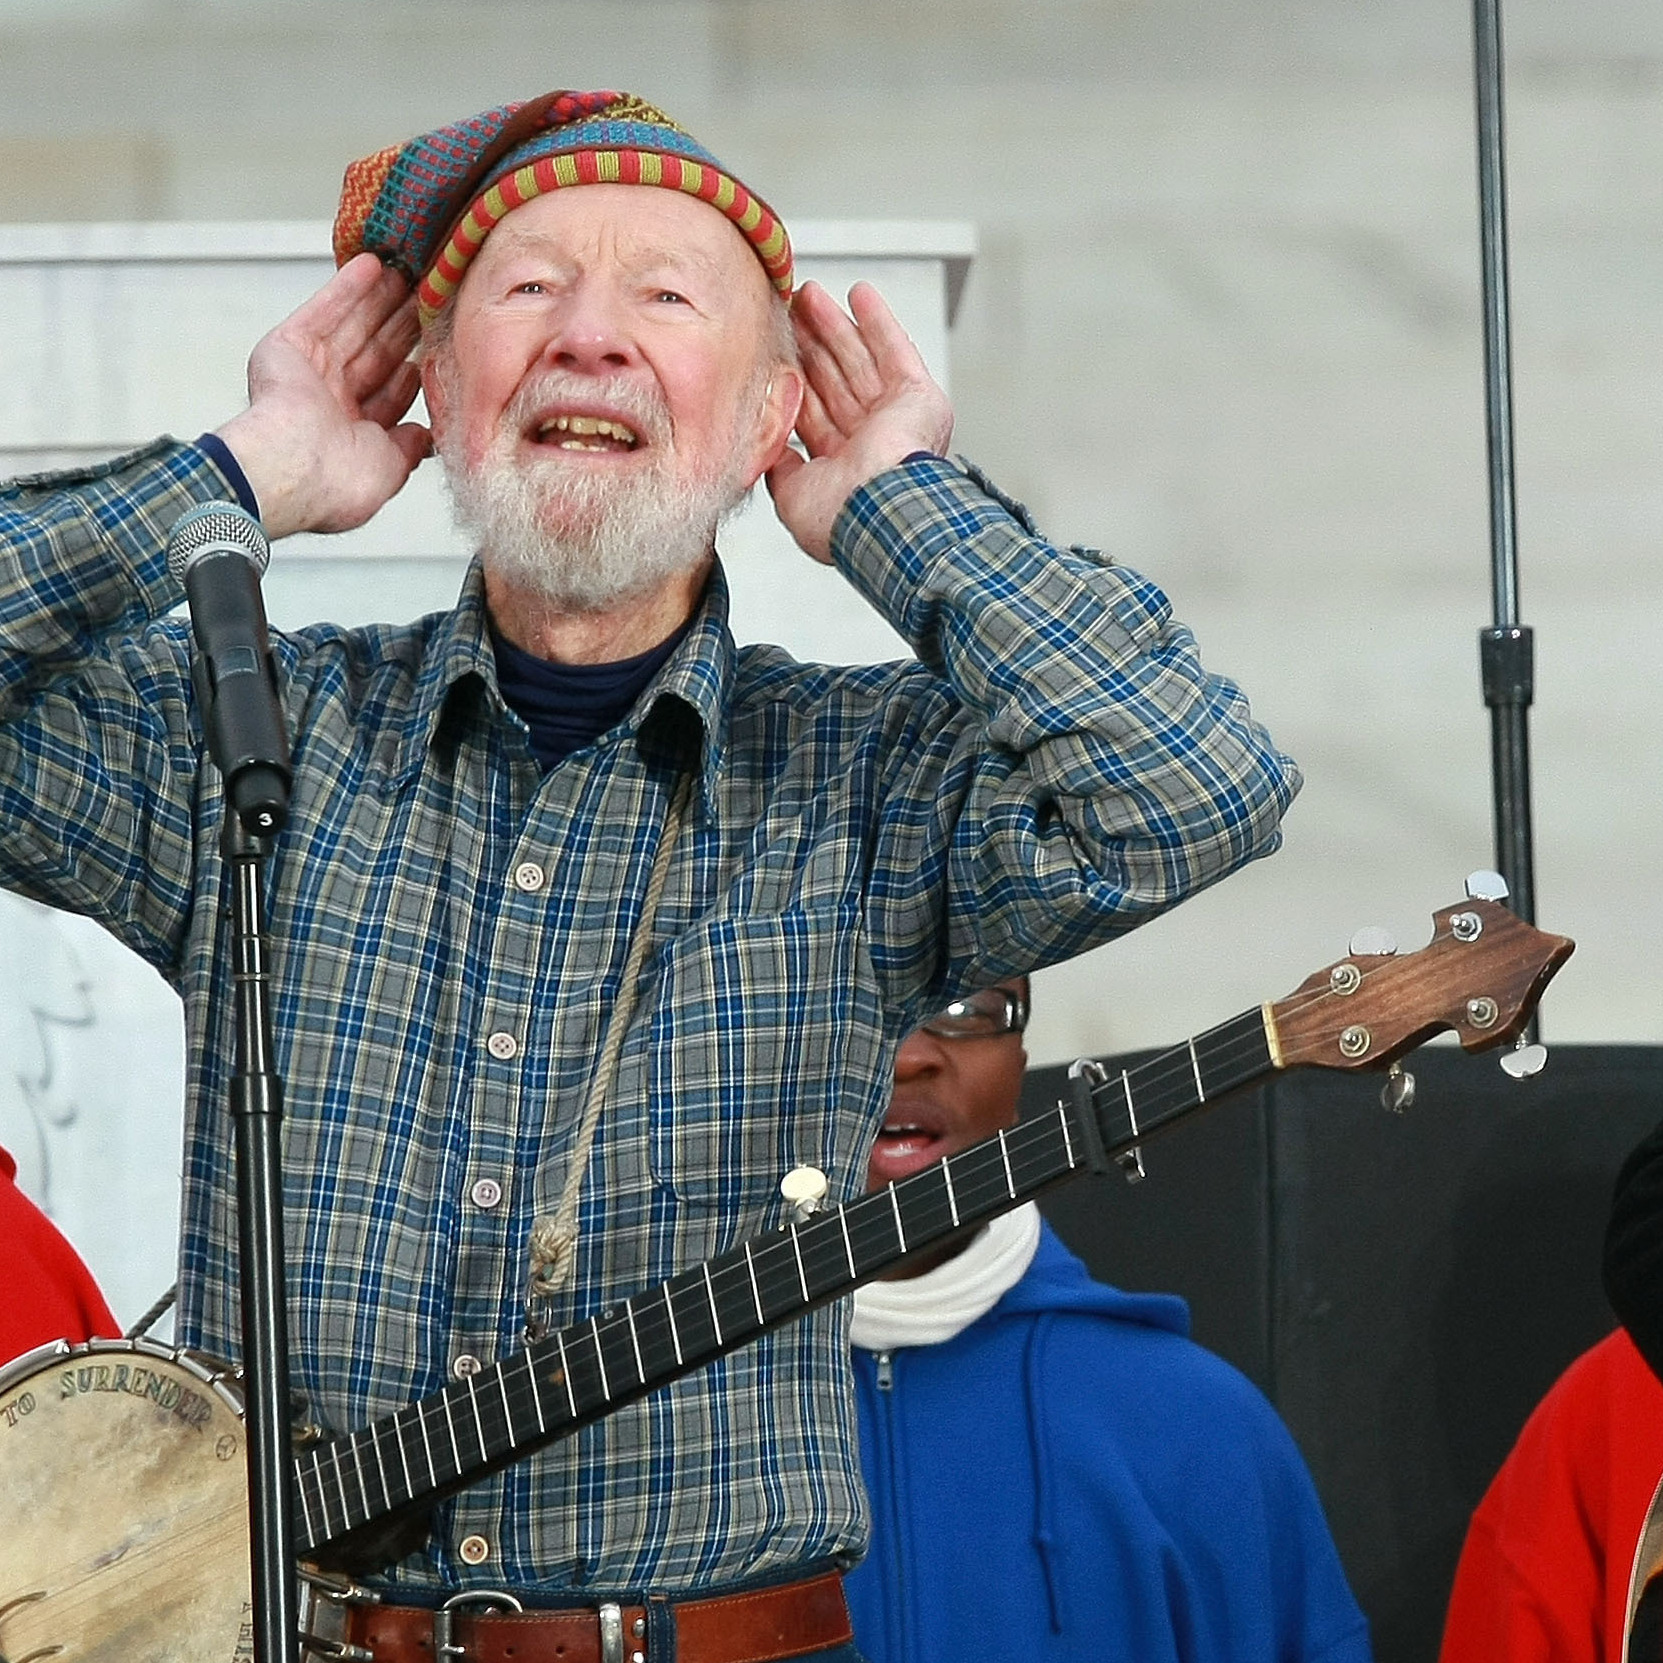 Pete Seeger in front of the Lincoln Memorial in 2009.